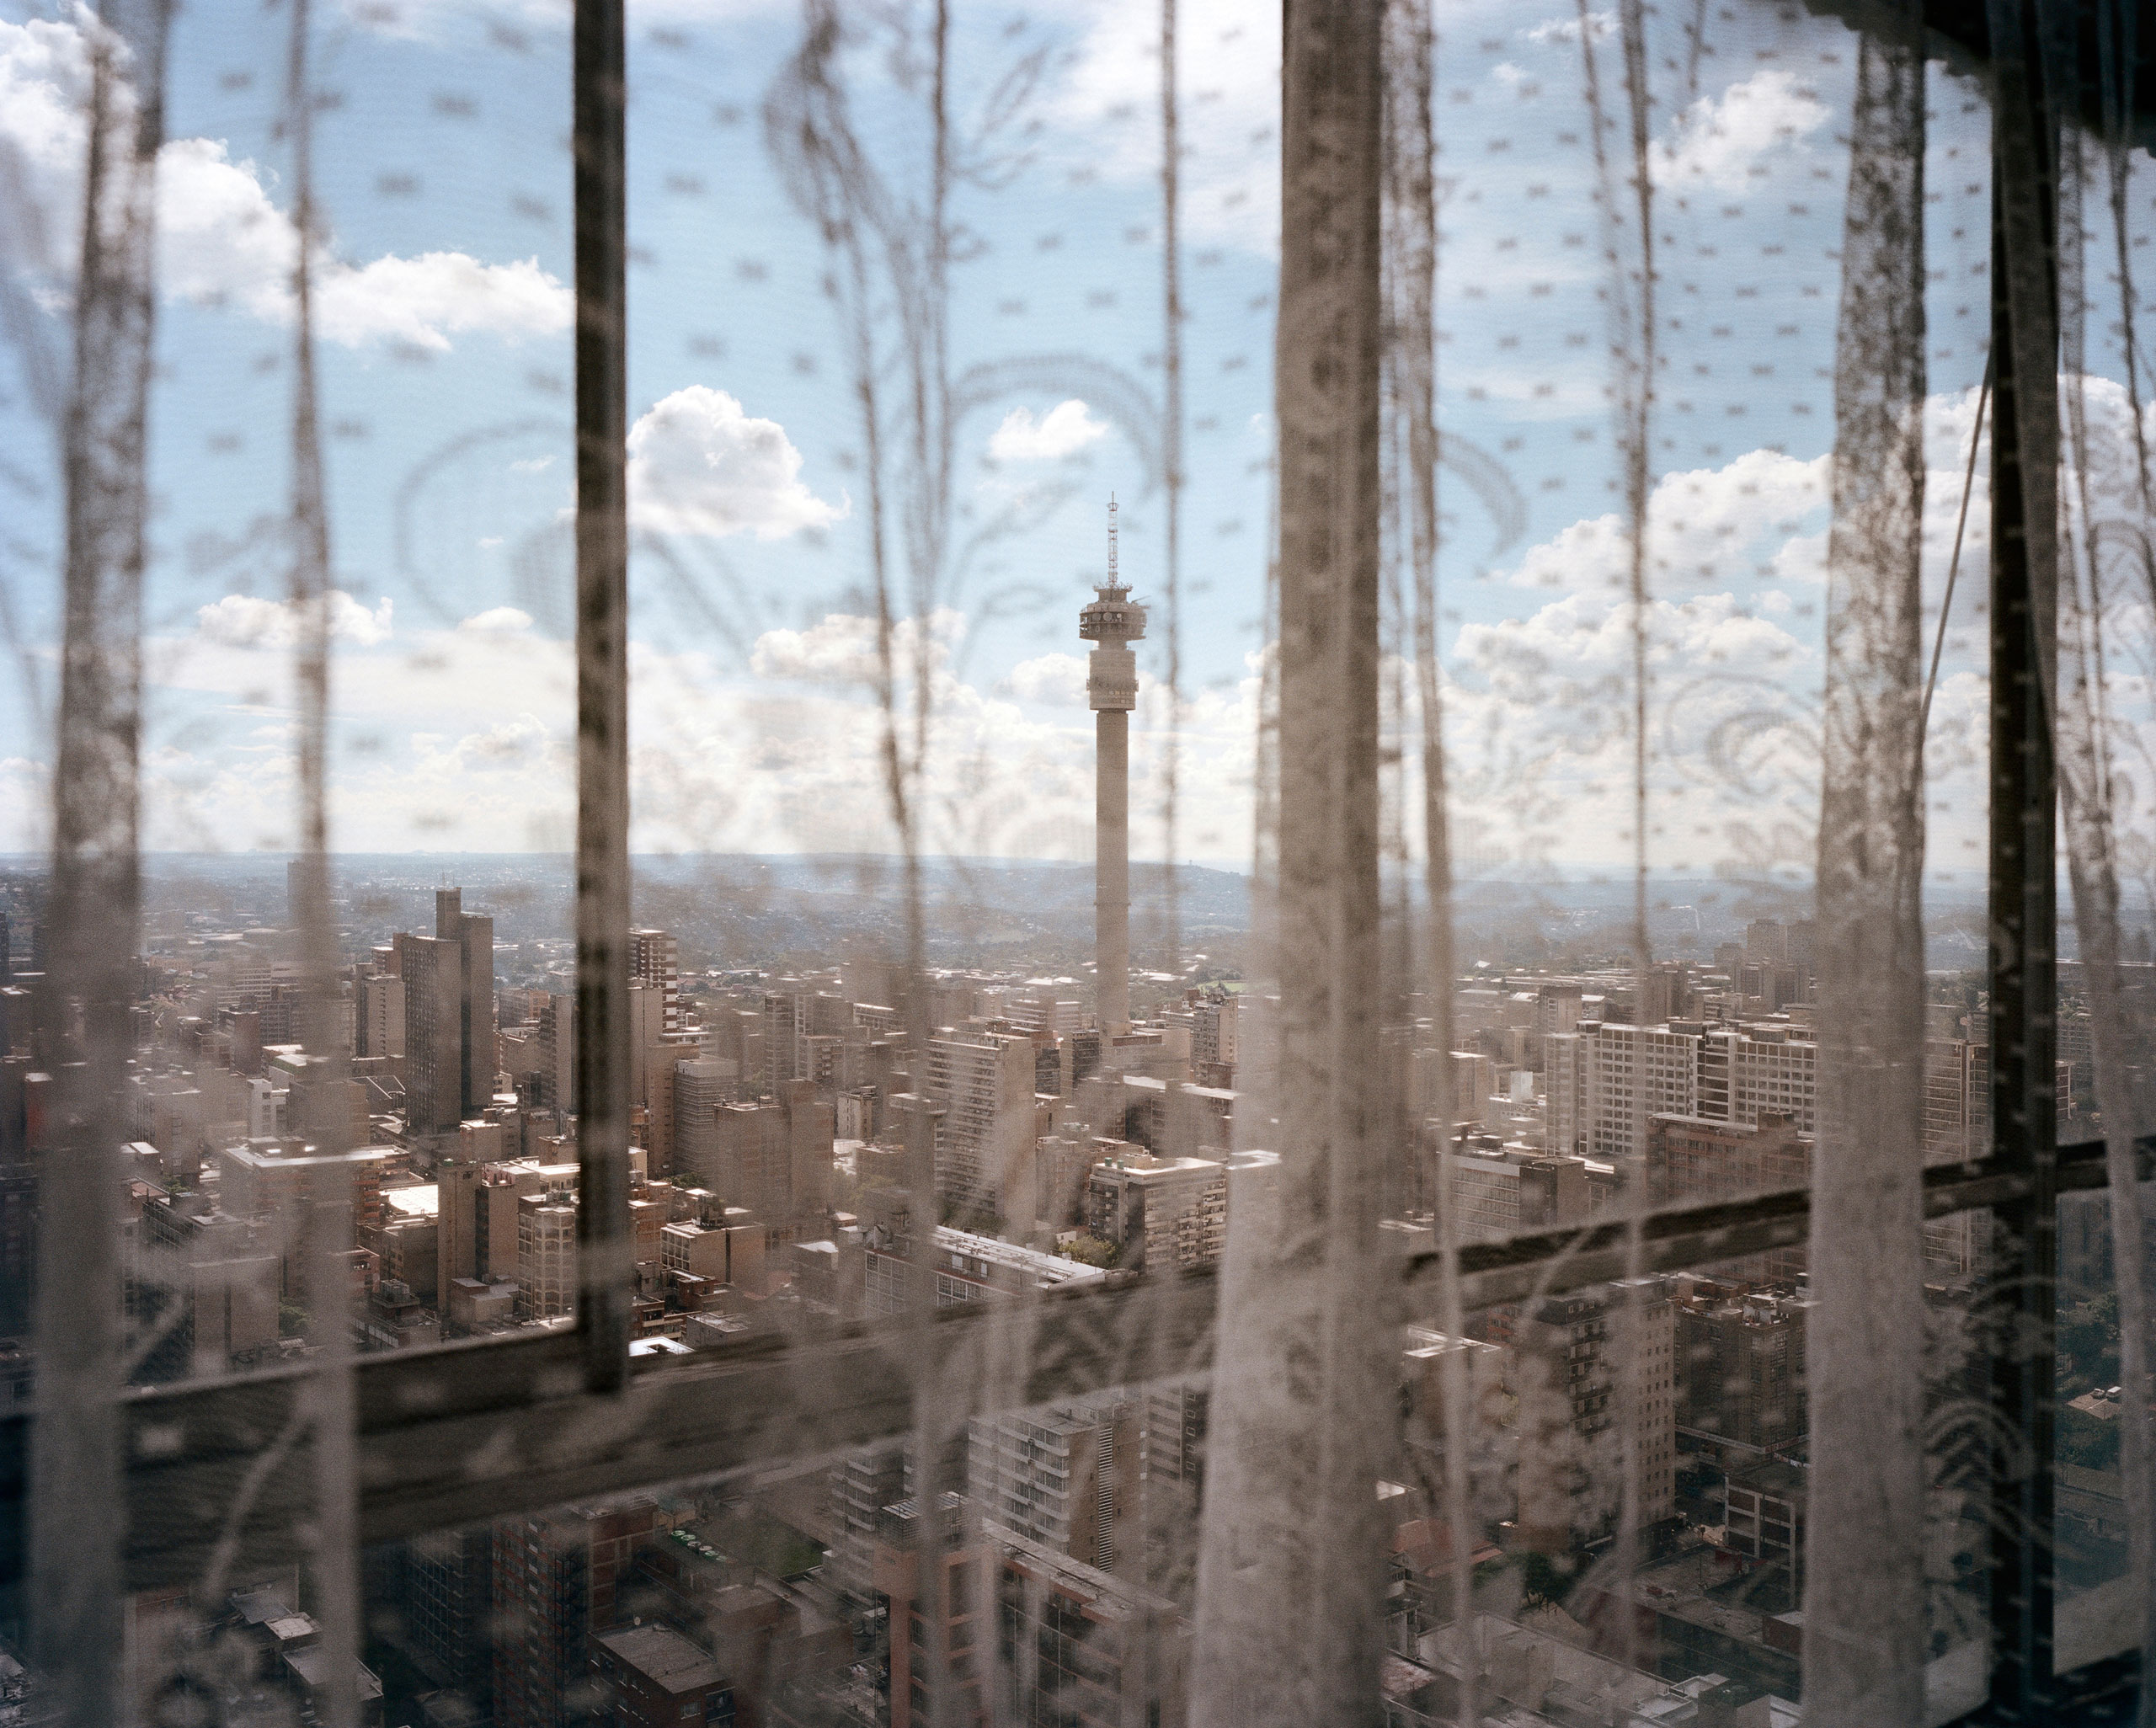 Hillbrow view, Ponte City, Johannesburg. From the series Ponte City, 2008.